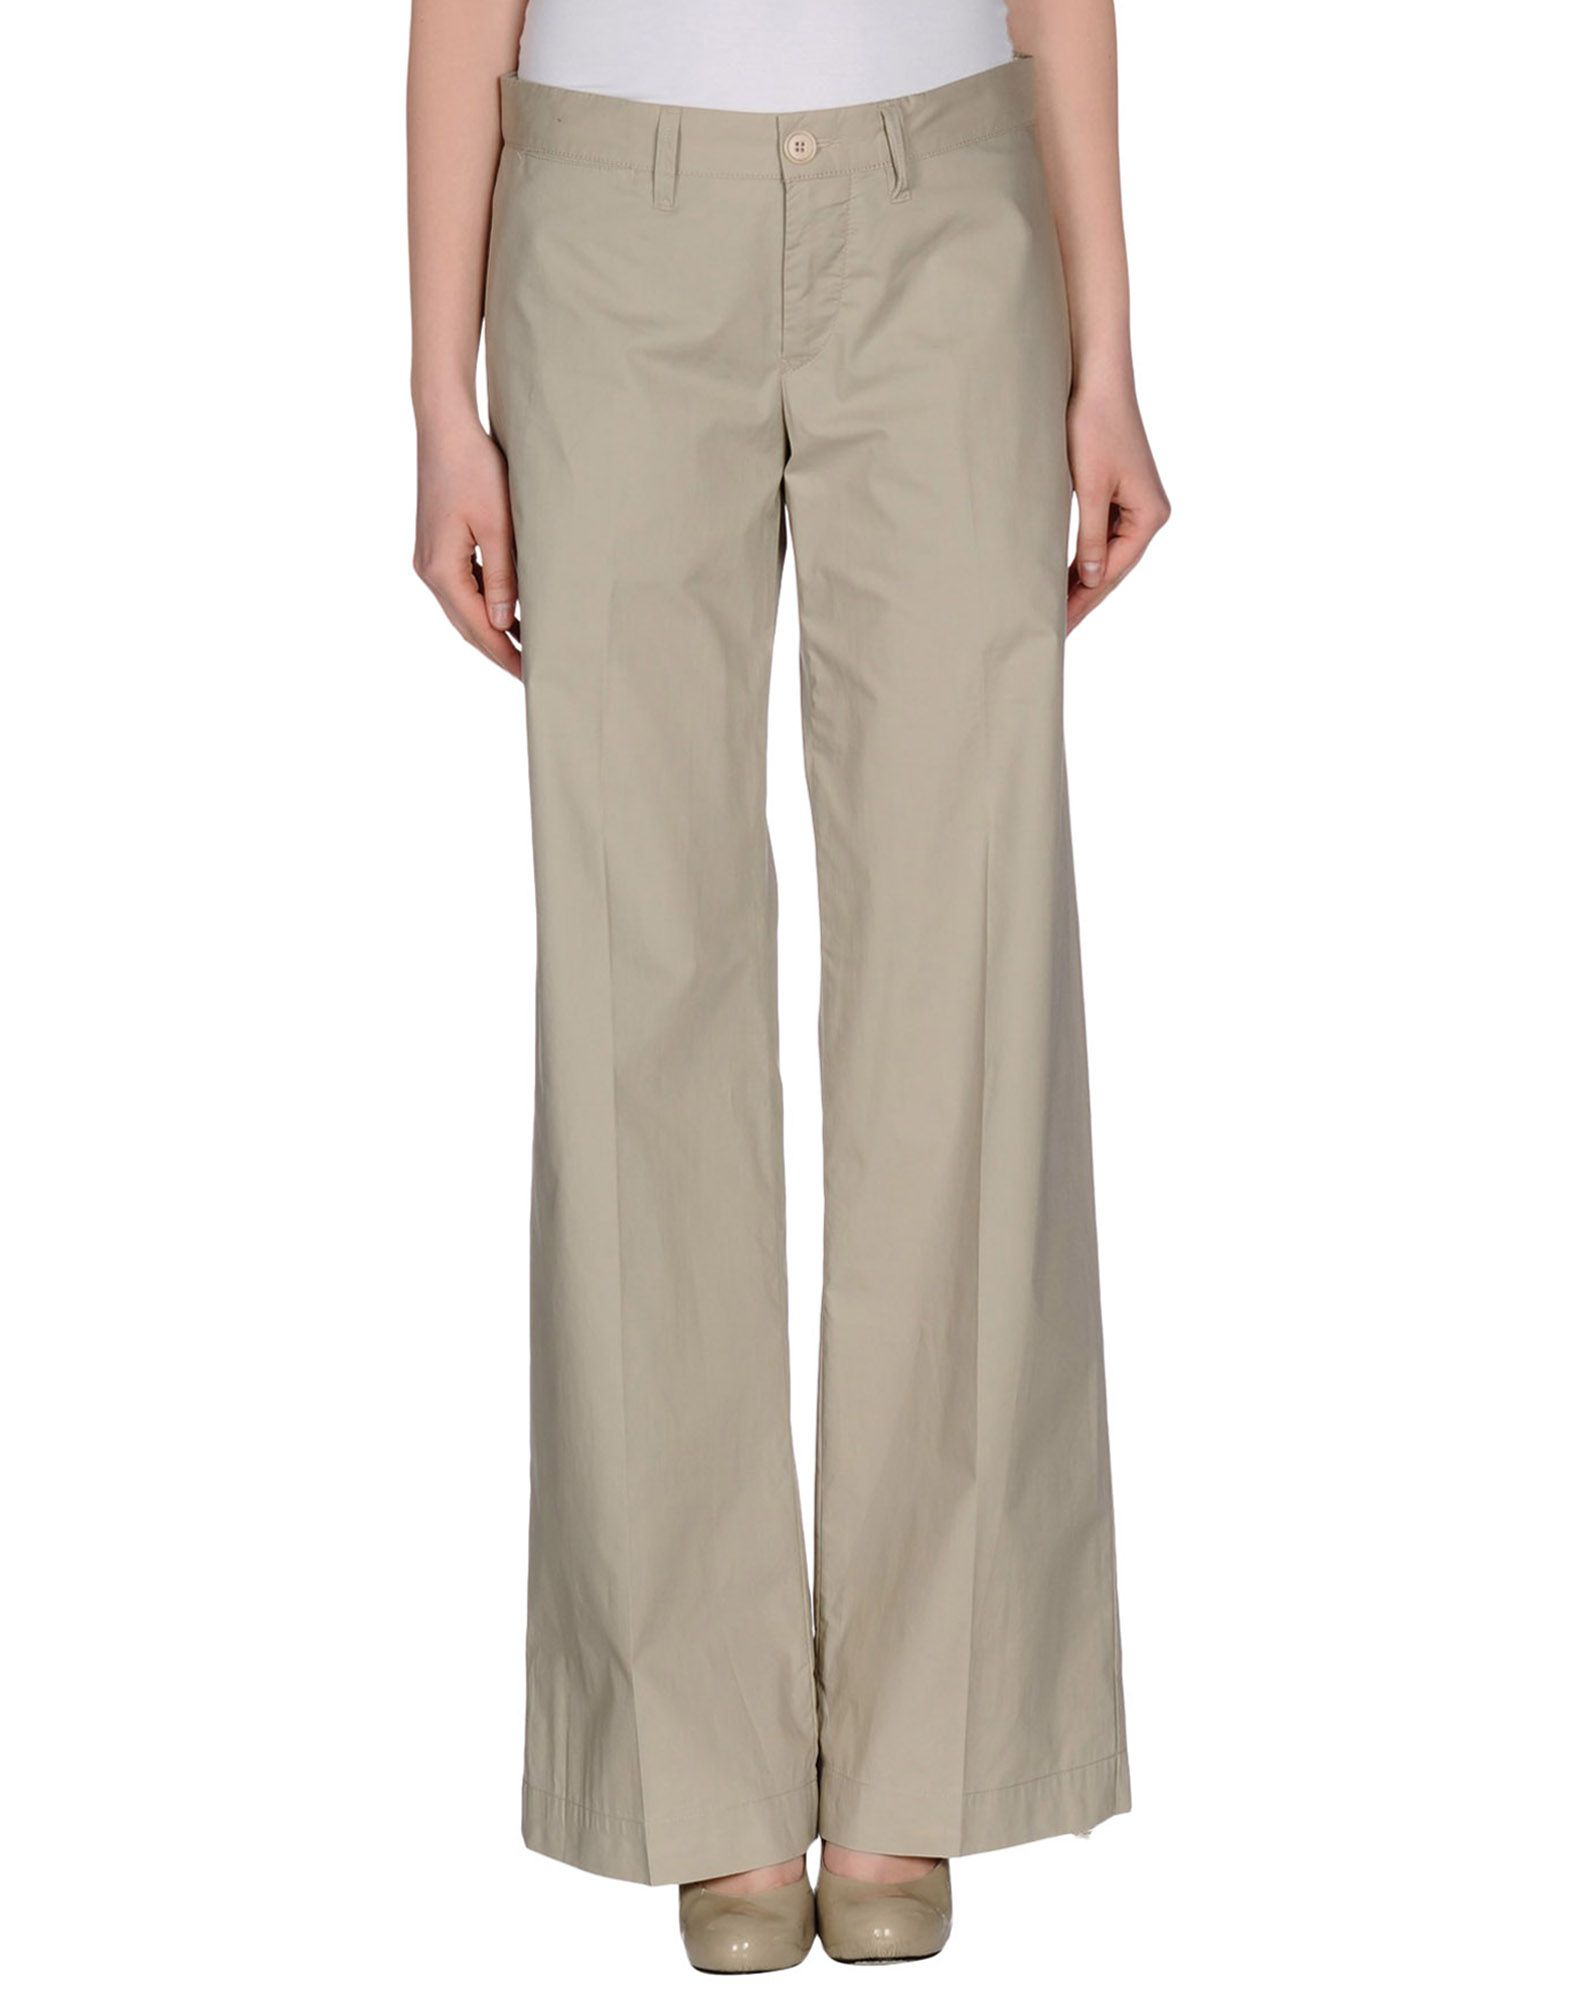 Luxury Roberto Cavalli Casual Trouser In Gray Light Grey  Lyst